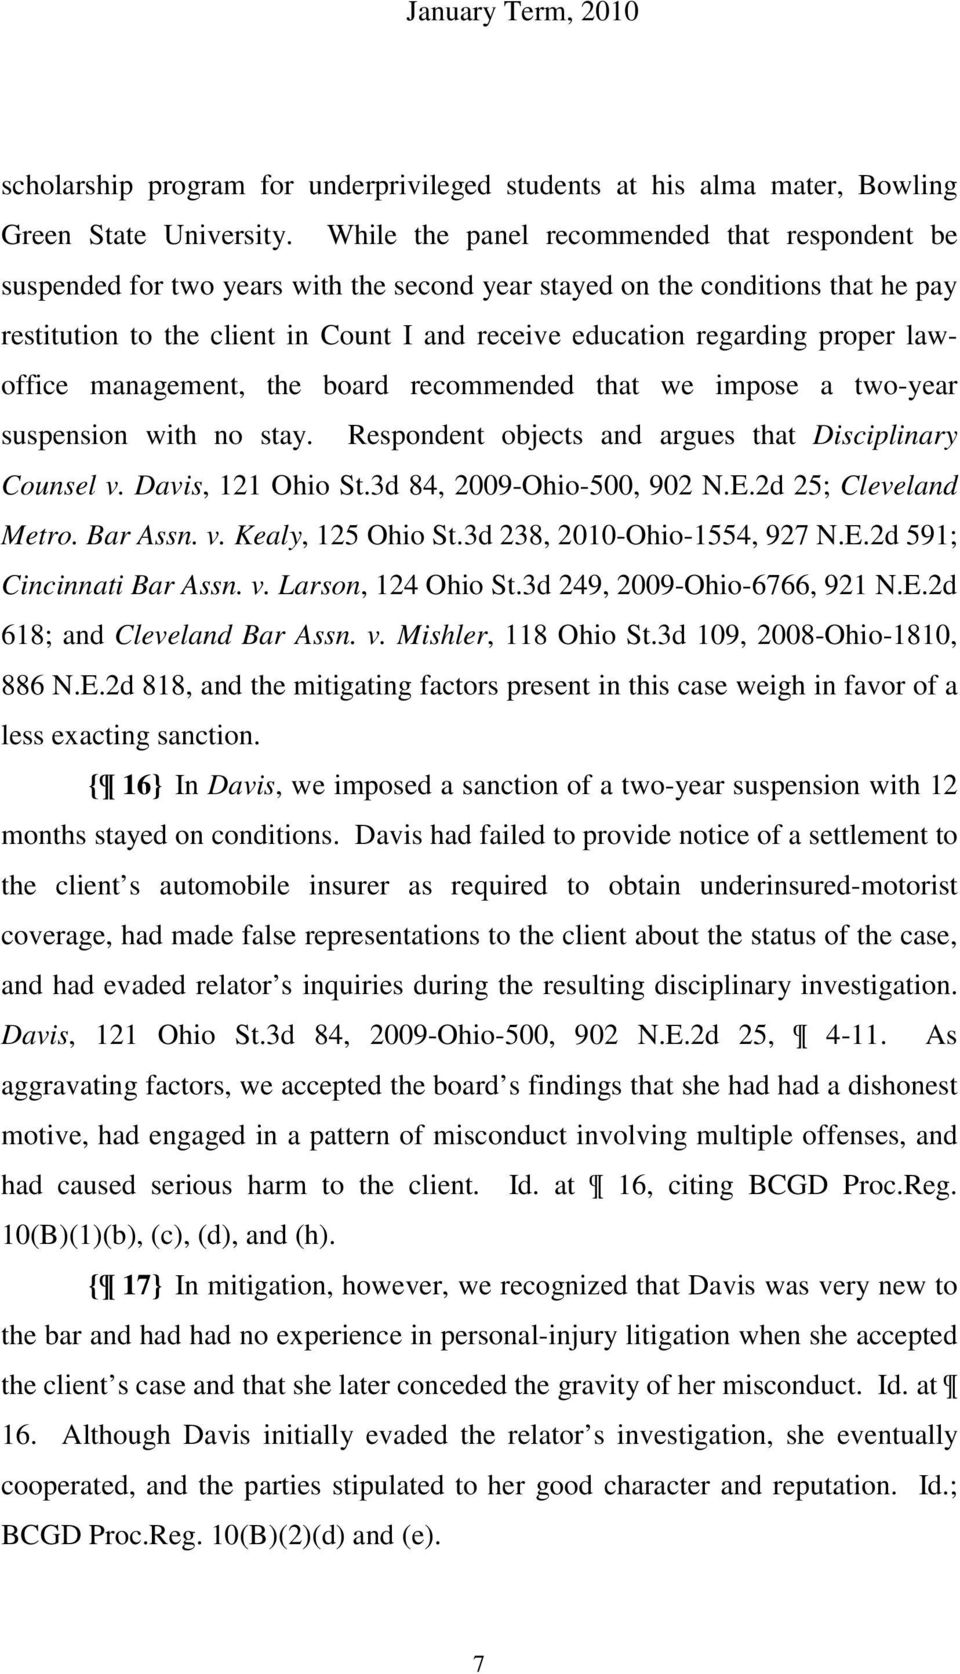 proper lawoffice management, the board recommended that we impose a two-year suspension with no stay. Respondent objects and argues that Disciplinary Counsel v. Davis, 121 Ohio St.